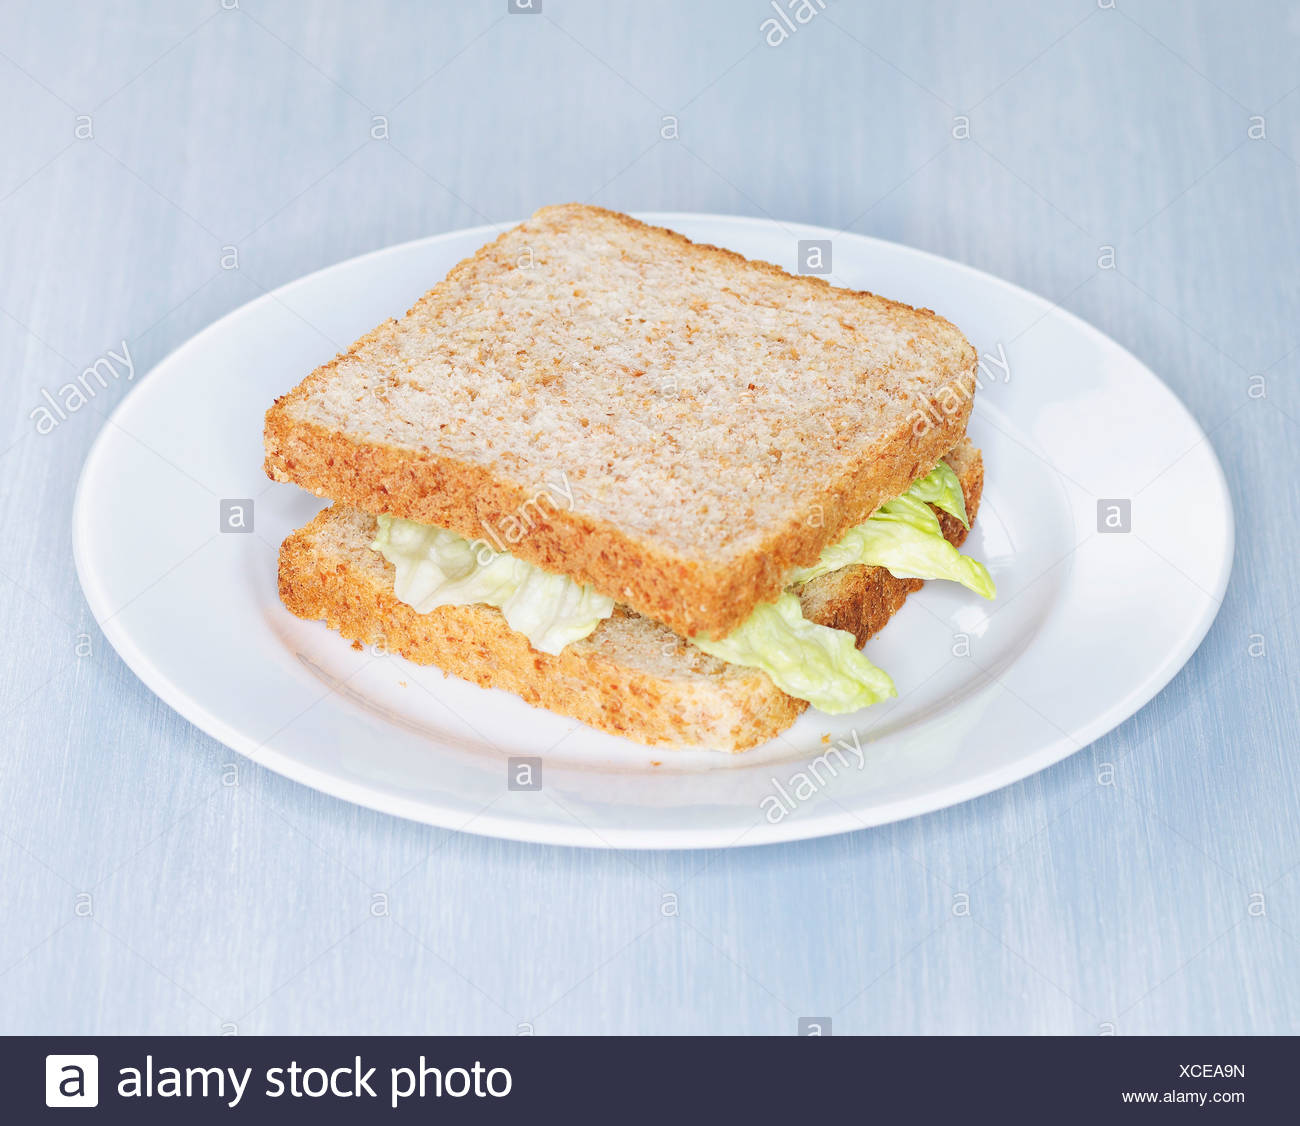 Whole meal toast sandwich with Iceberg salad on plate - Stock Image